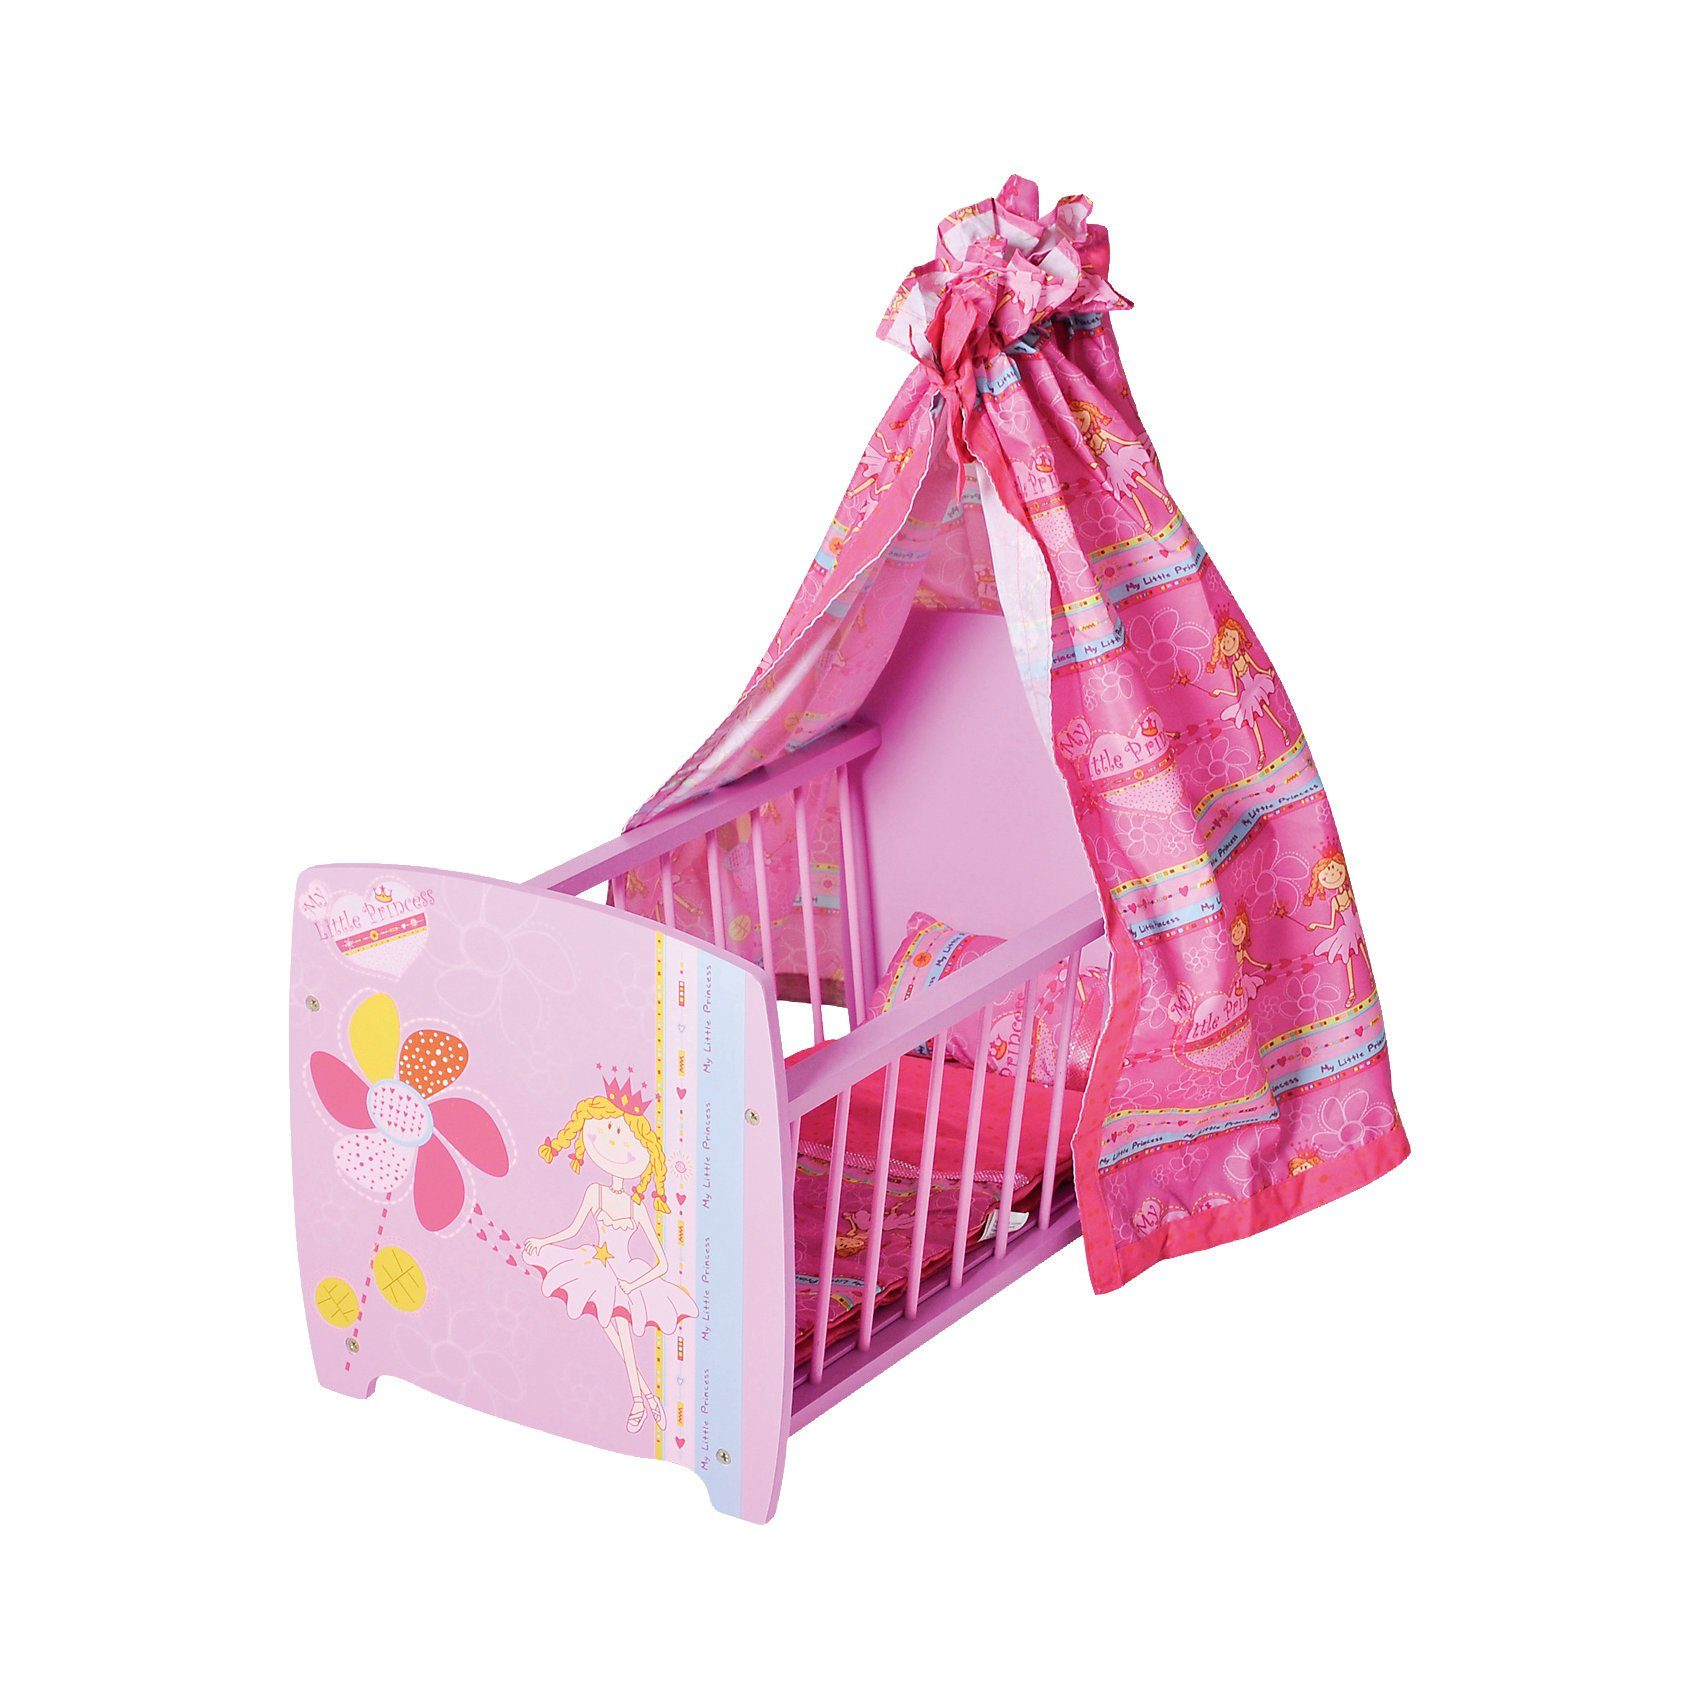 Knorrtoys® Puppenbett Little Princess, pink